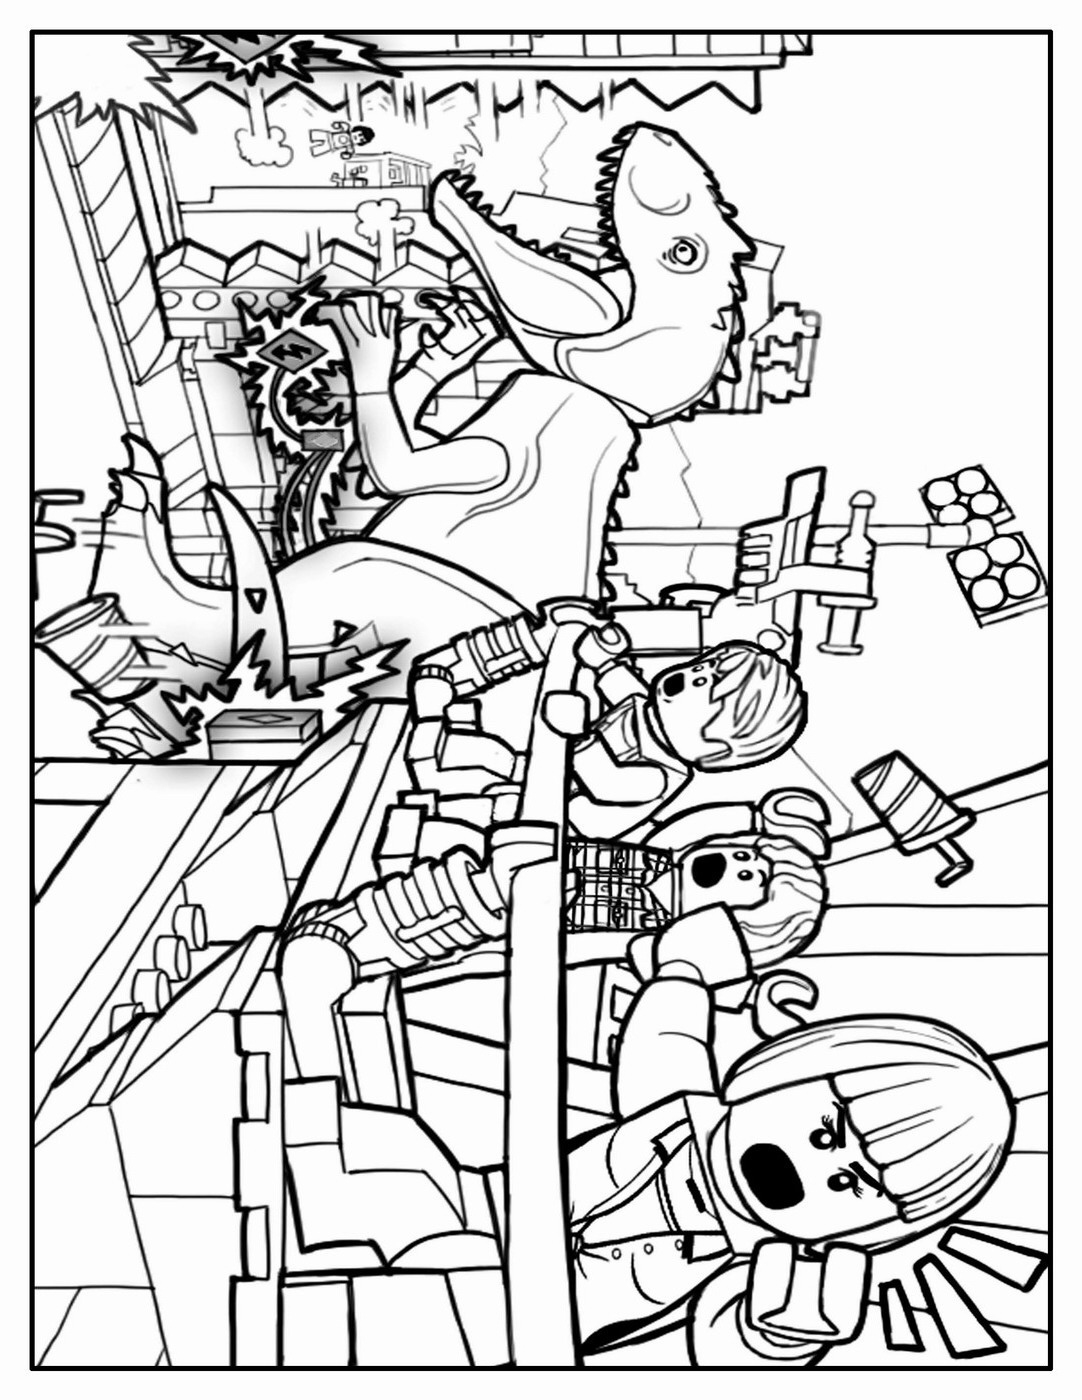 Jurassic World Coloring Pages Indominus Rex - Maken Coloring Pages | 1400x1082